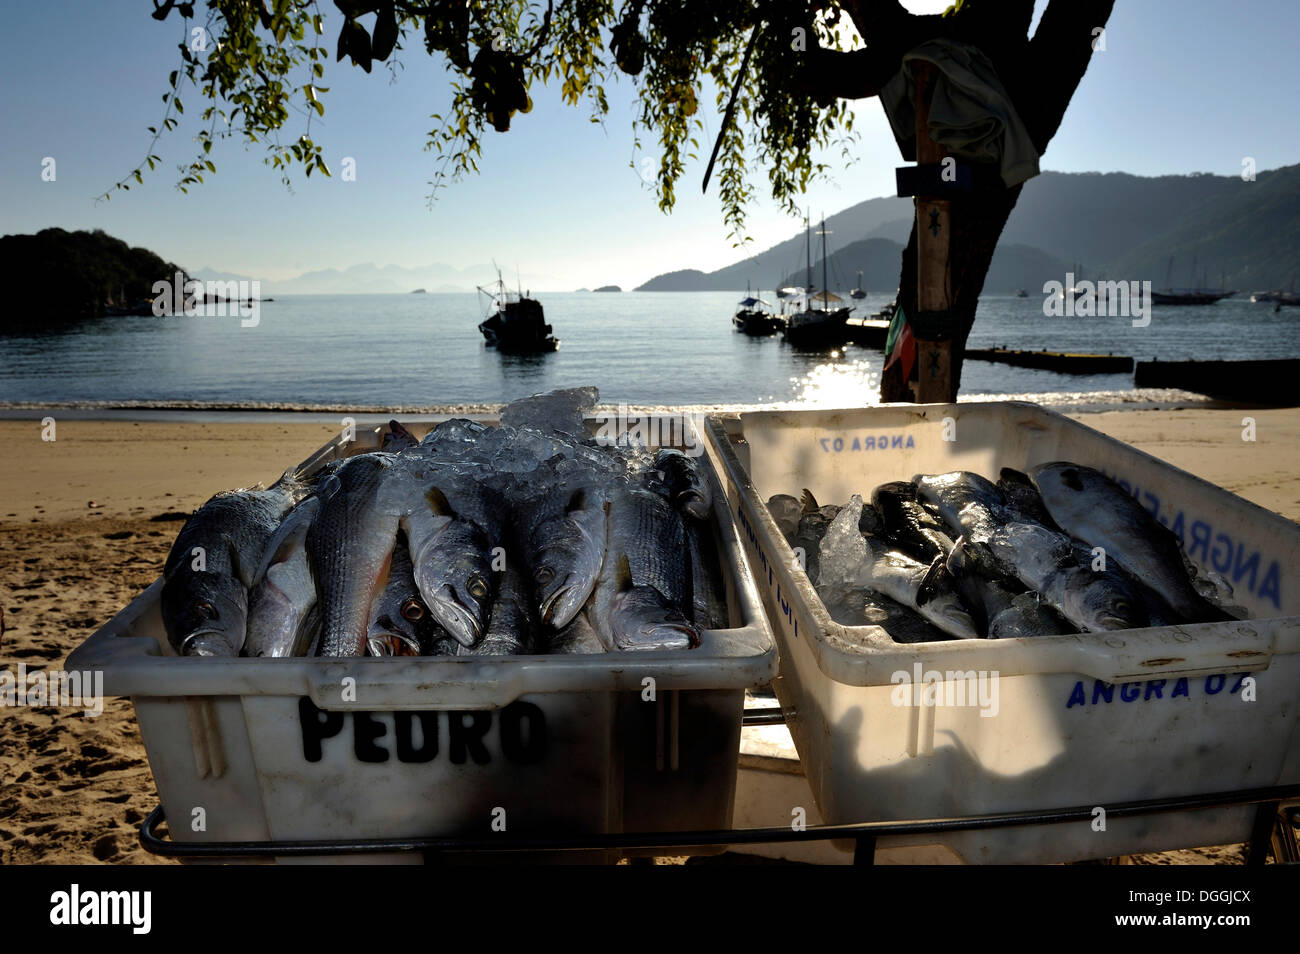 Ice-cooled fish for sale at the beach, Ilha Grande, state of Rio de Janeiro, Brazil, South America - Stock Image